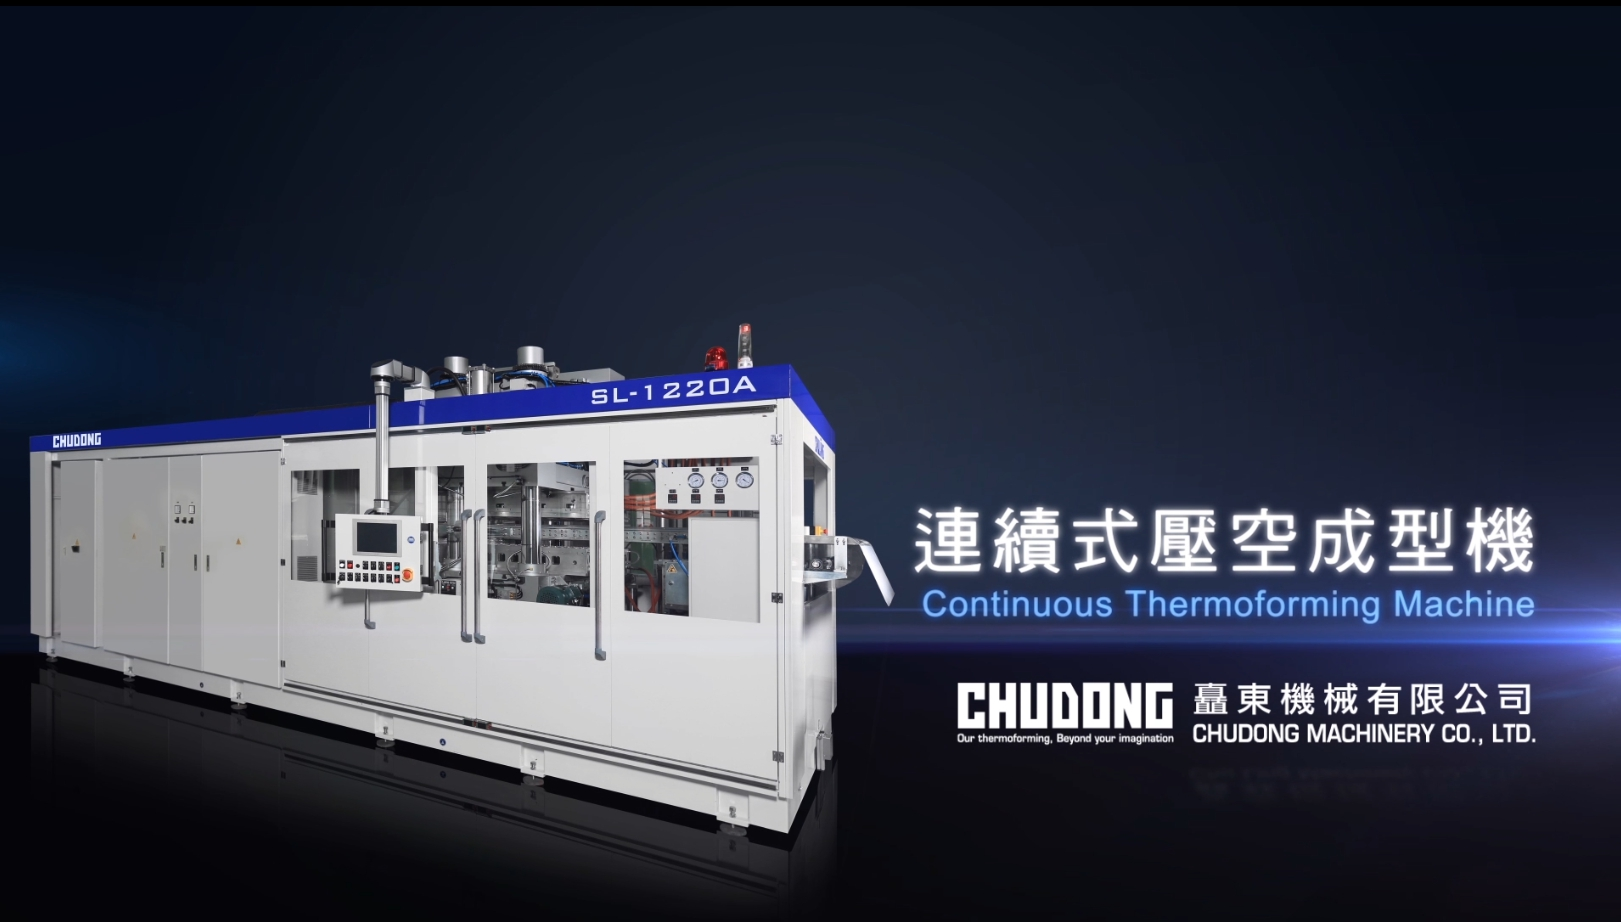 Continuous Thermoforming Machine